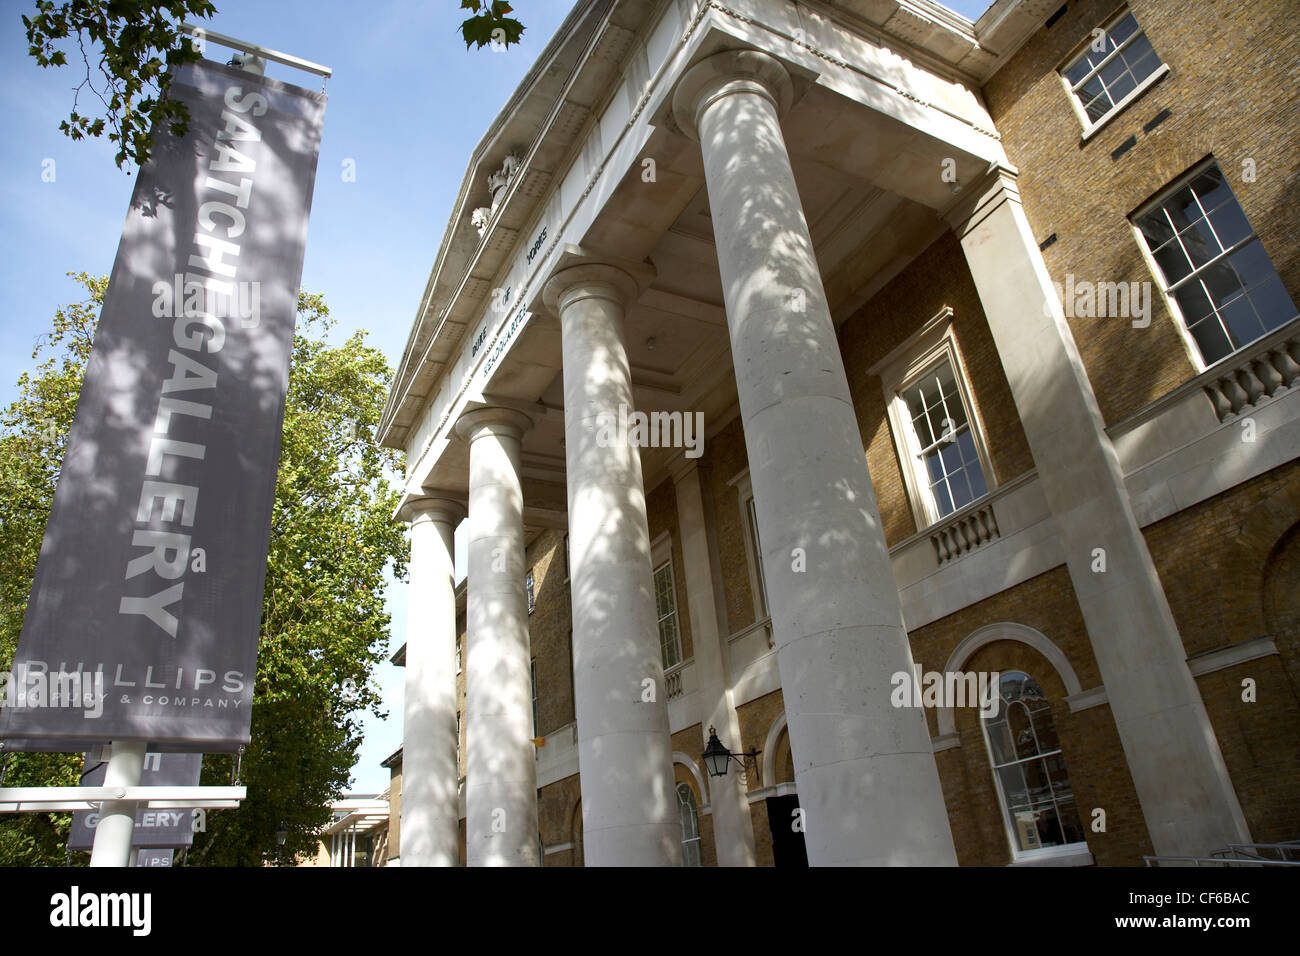 The entrance to The Saatchi Gallery. - Stock Image